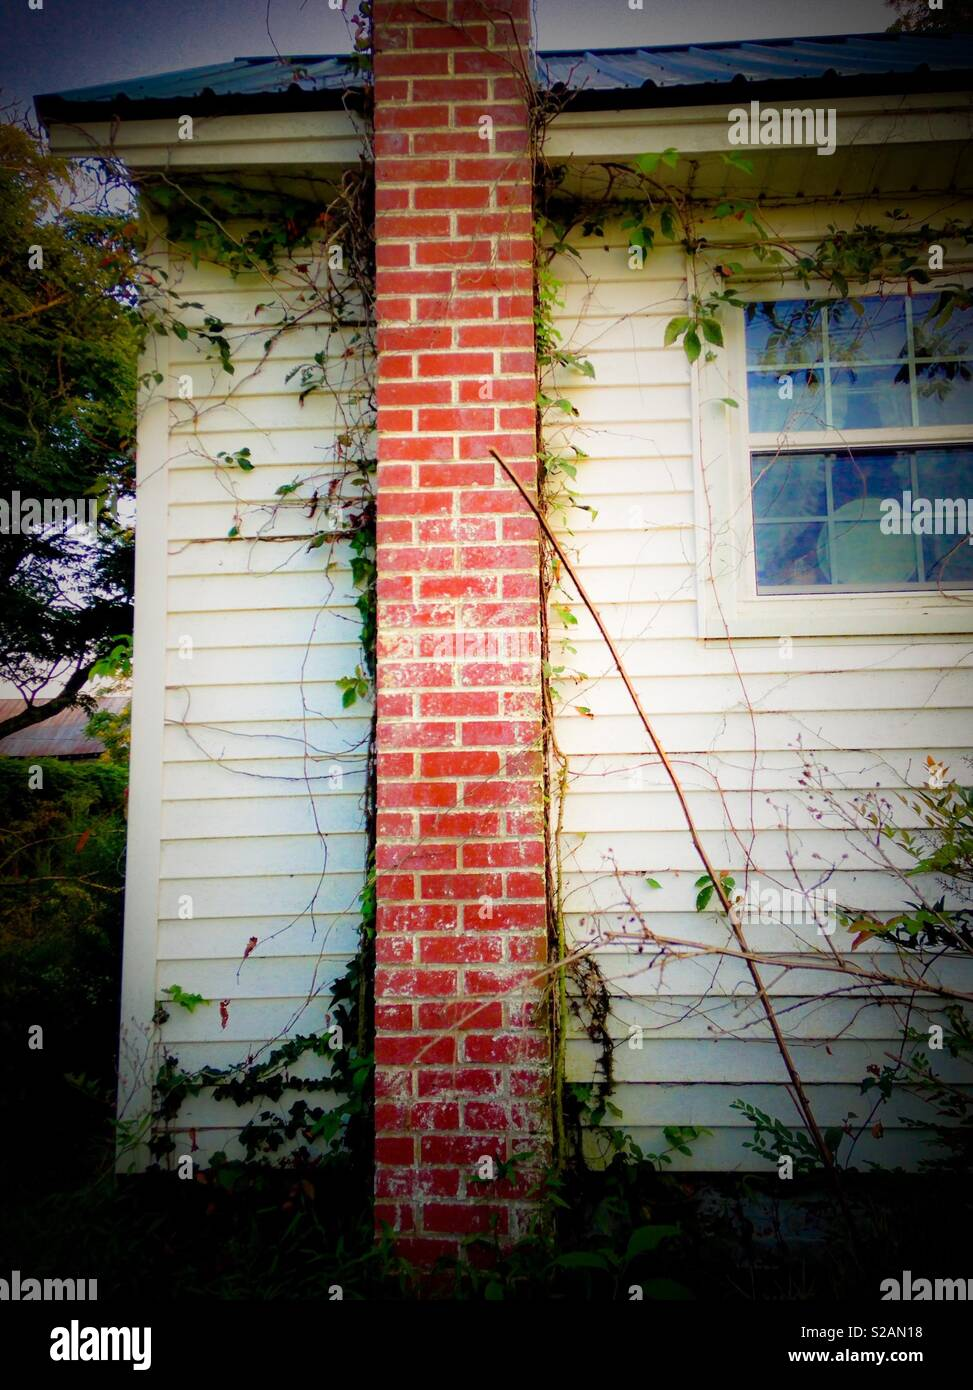 Benign neglect in the form of vines and weeds on side of old white house with chimney - Stock Image